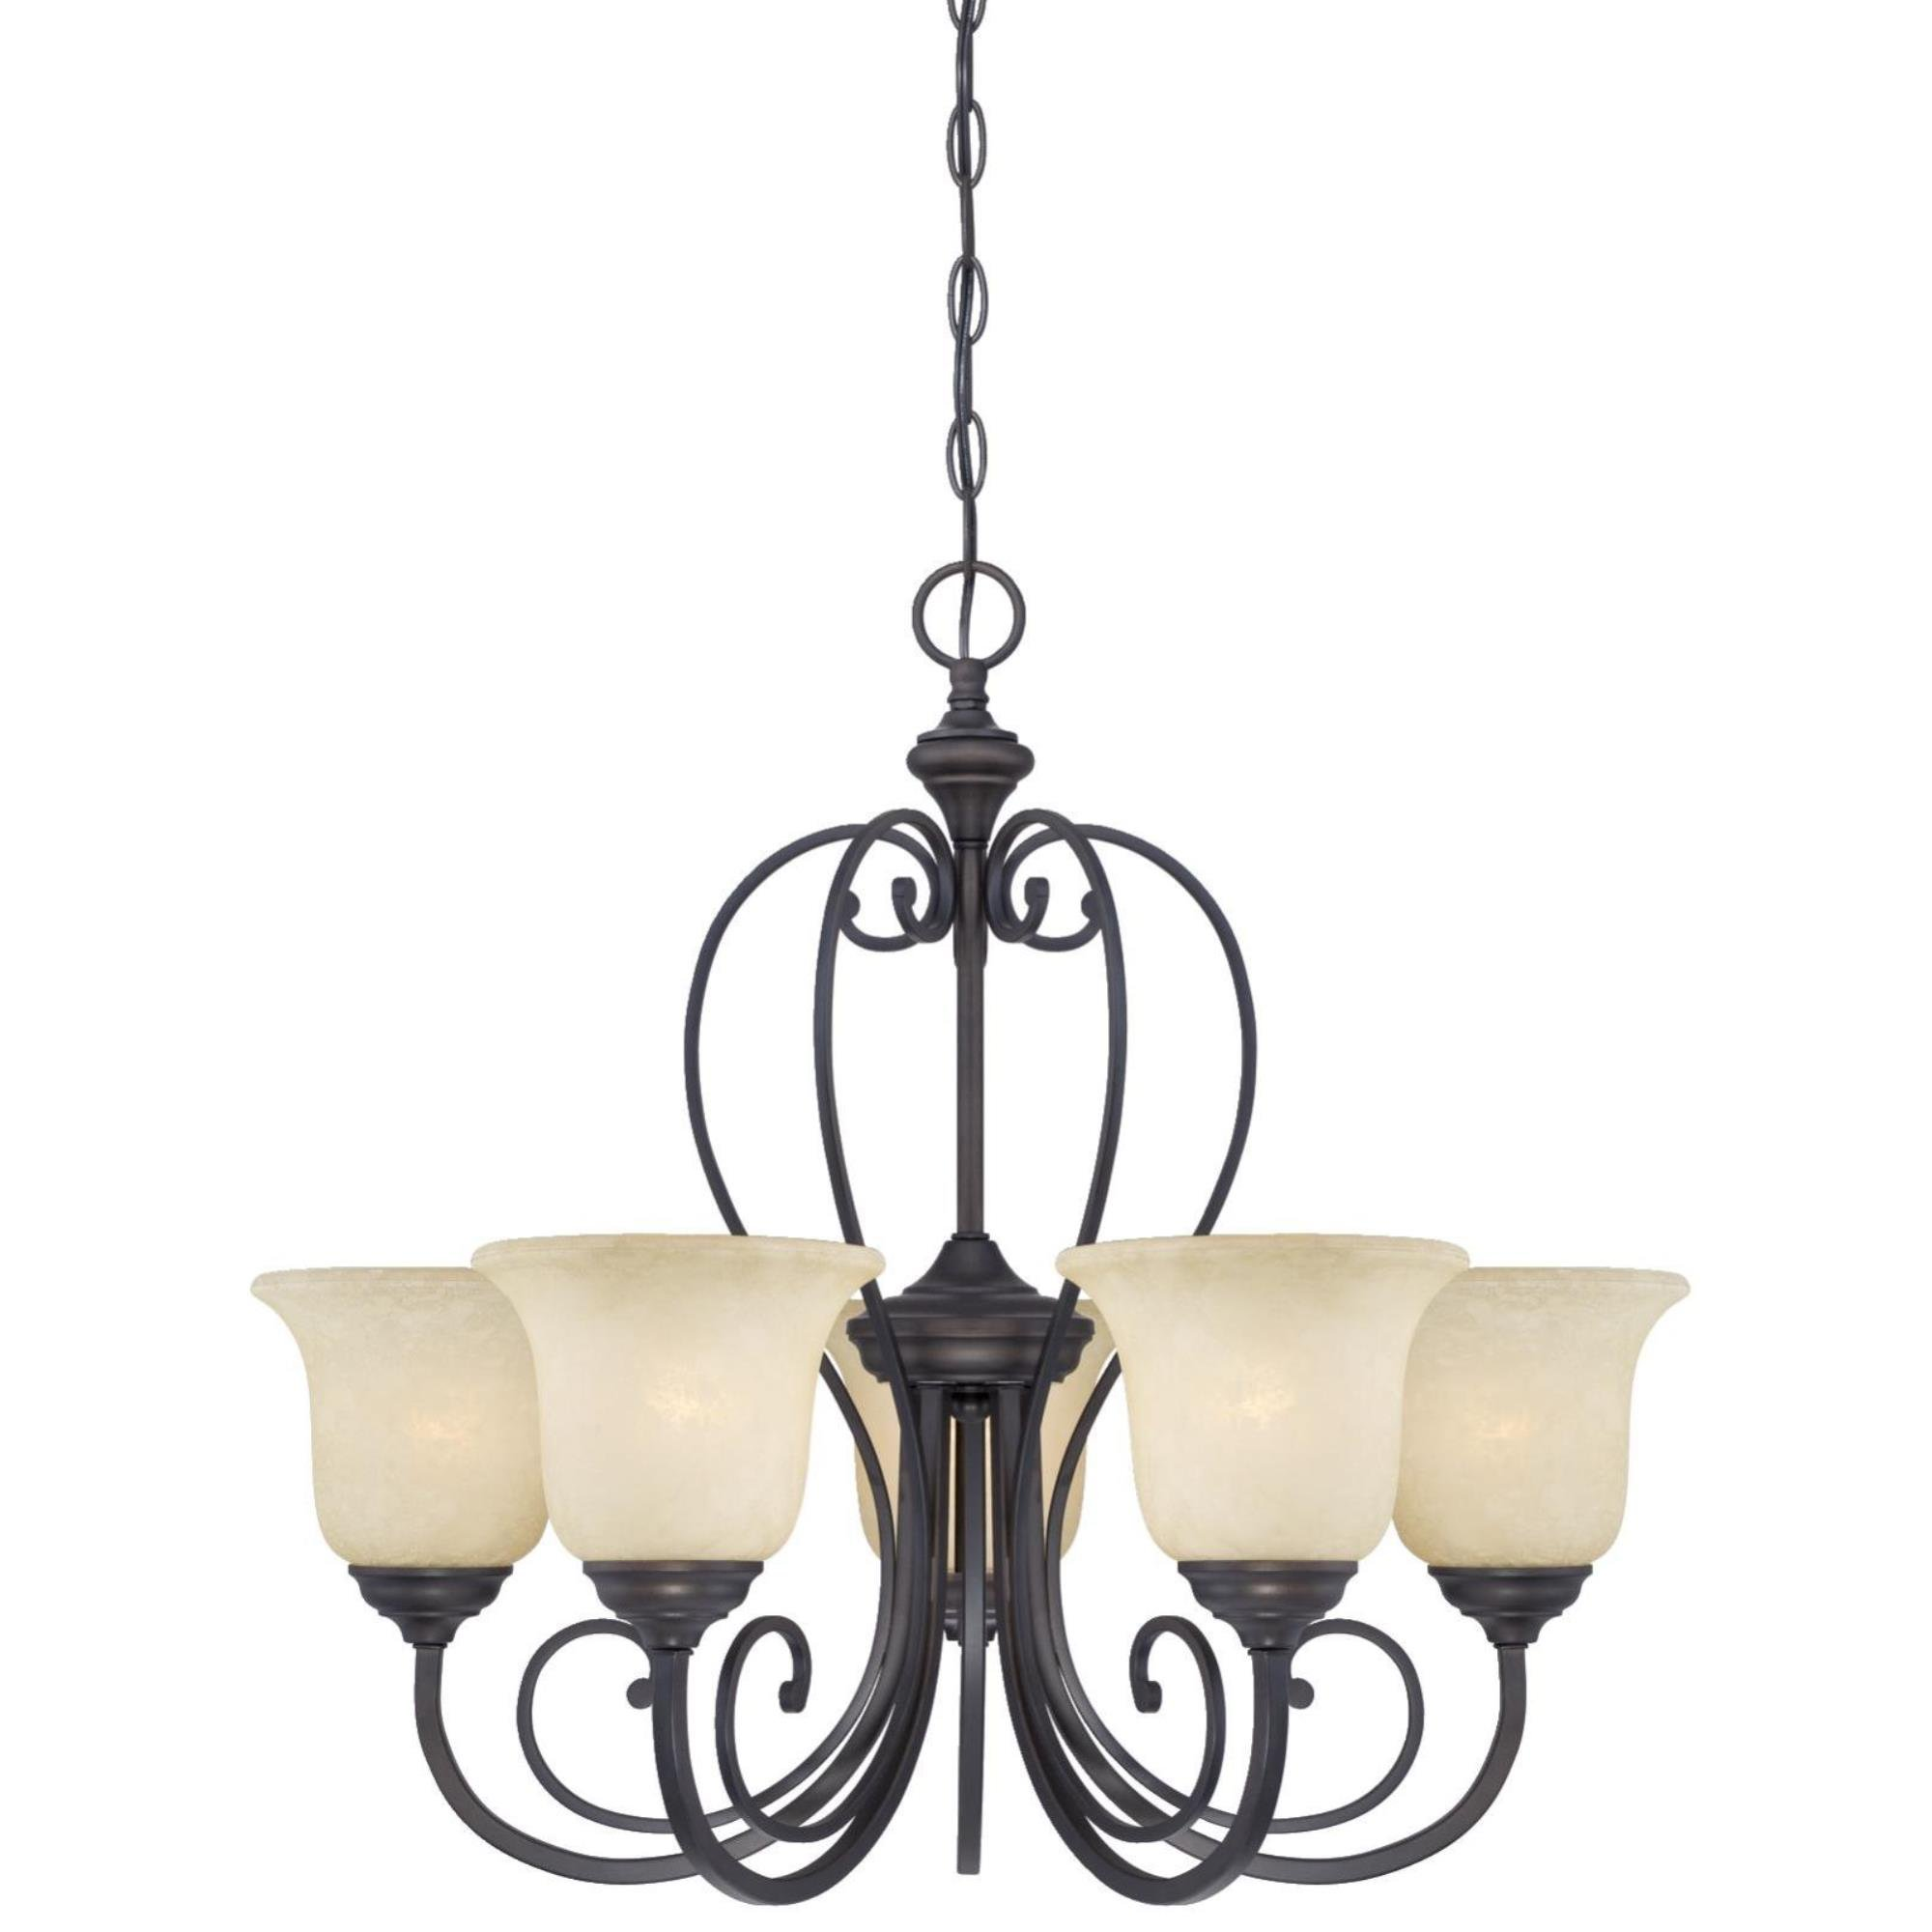 Westinghouse 6340700 Callan Five-Light Indoor Chandelier, Oil Rubbed Bronze Finish with Caramel Scavo Glass